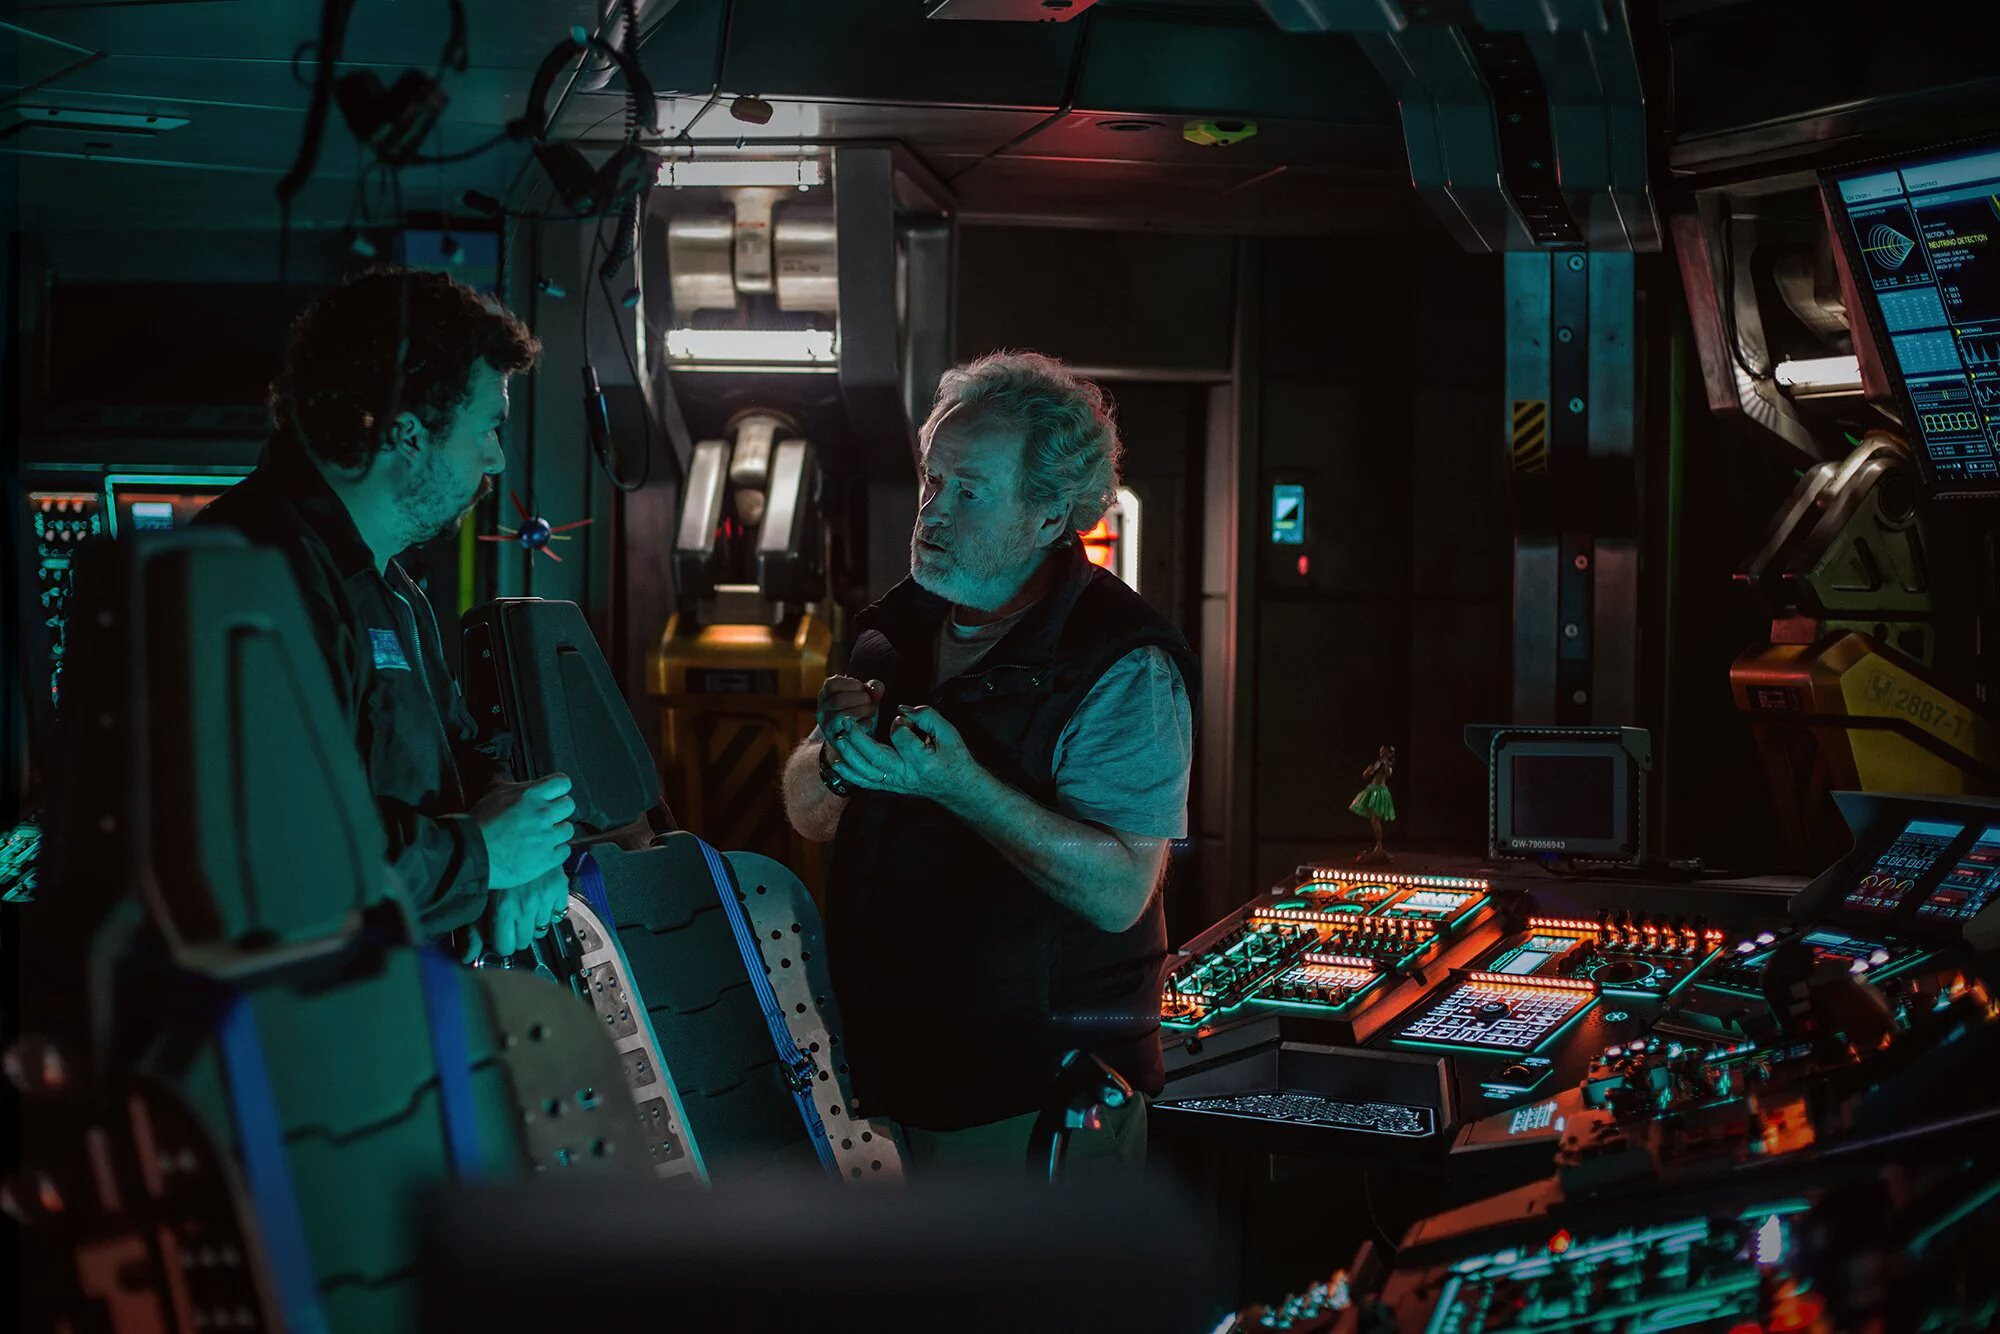 Ridley Scott Alien Covenant Danny McBride